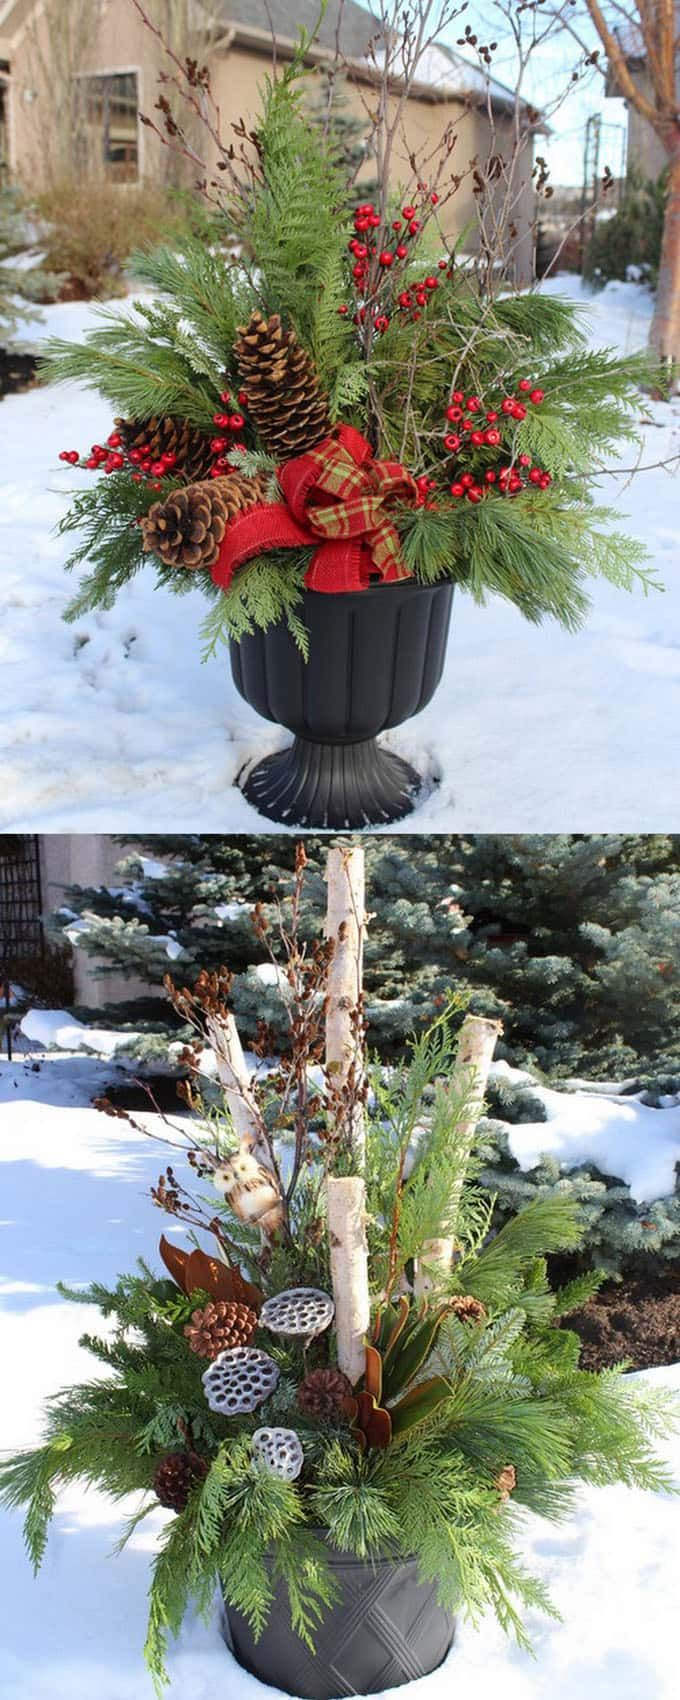 How to create colorful winter outdoor planters and beautiful Christmas planters with plant cuttings and decorative elements that last for a long time! - A Piece of Rainbow (Christmas Porch Ideas)